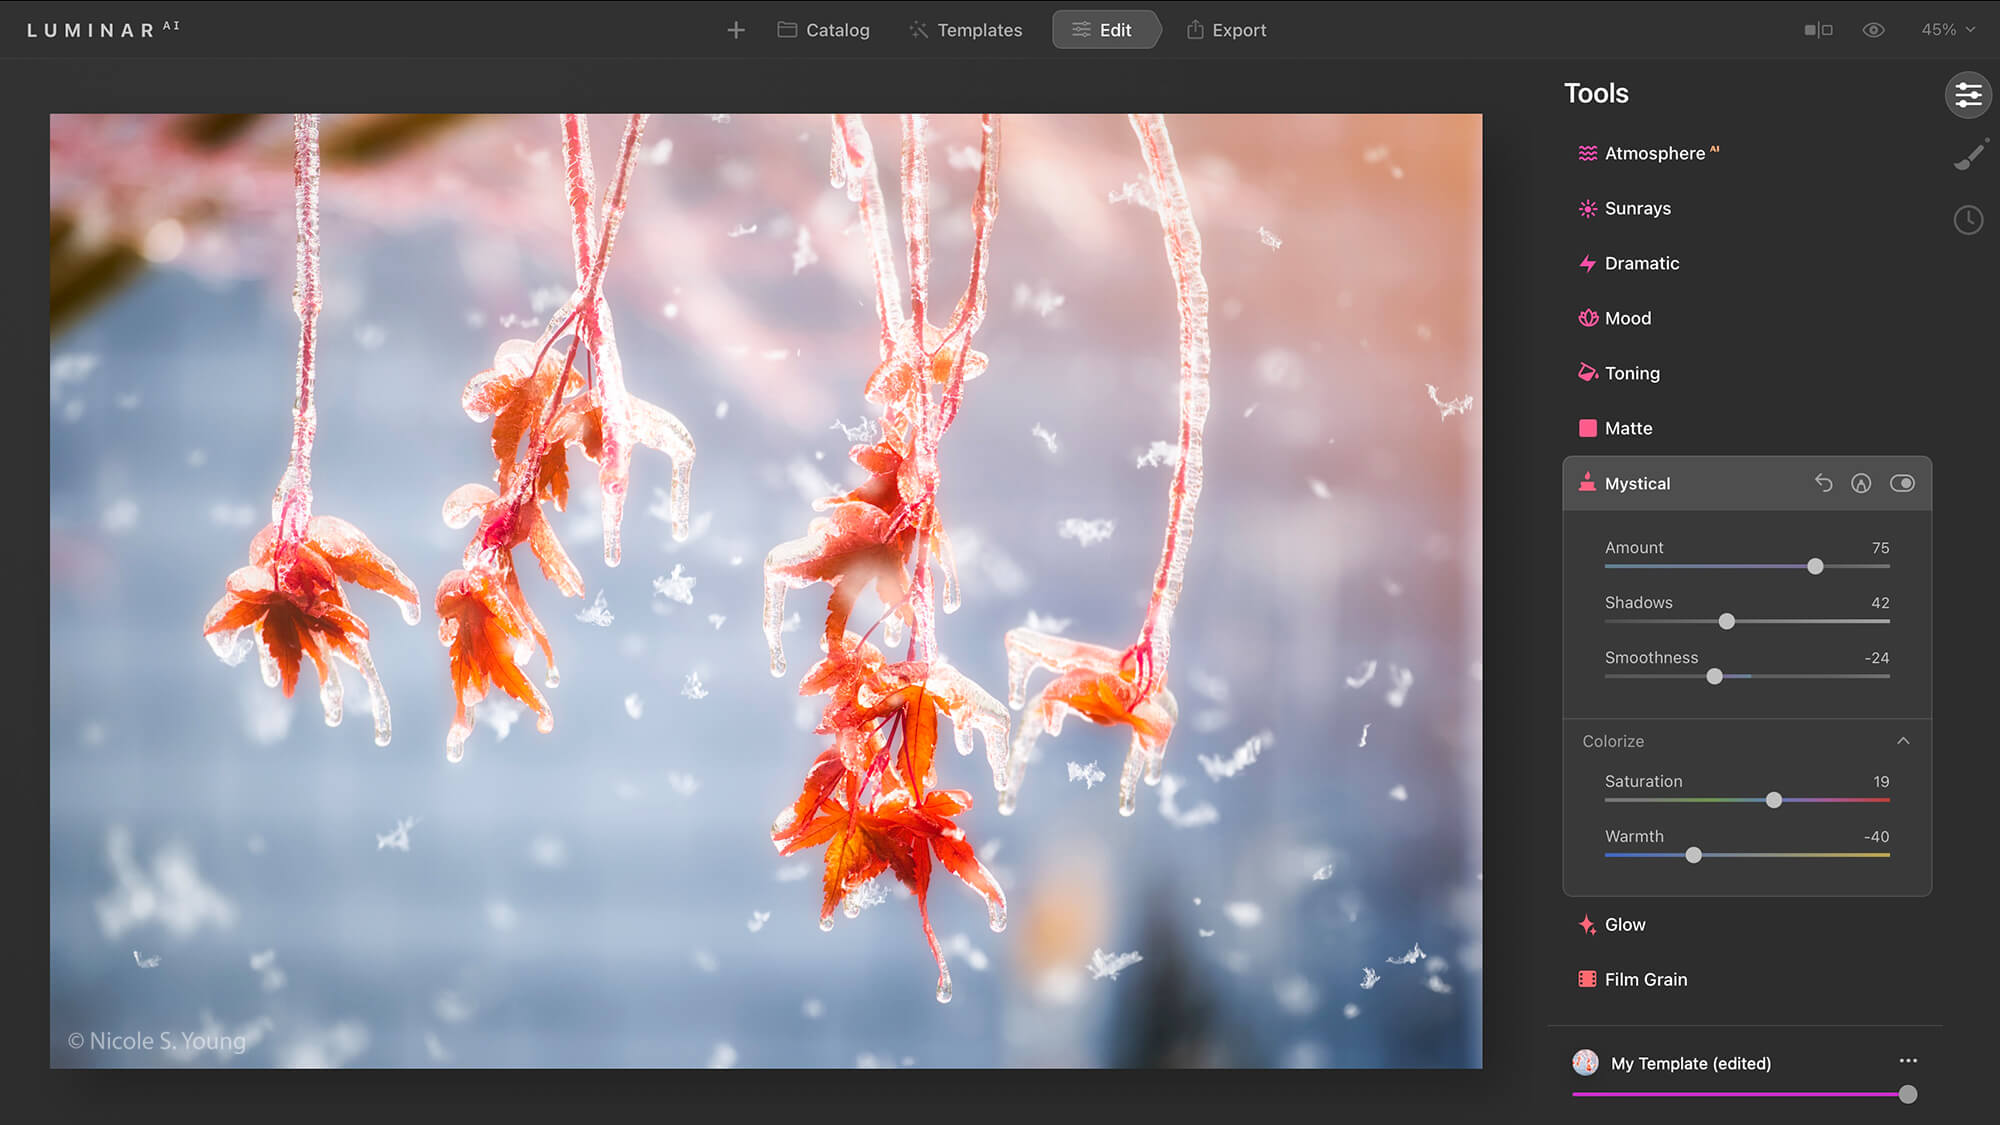 Final touches for creative photo editing tips